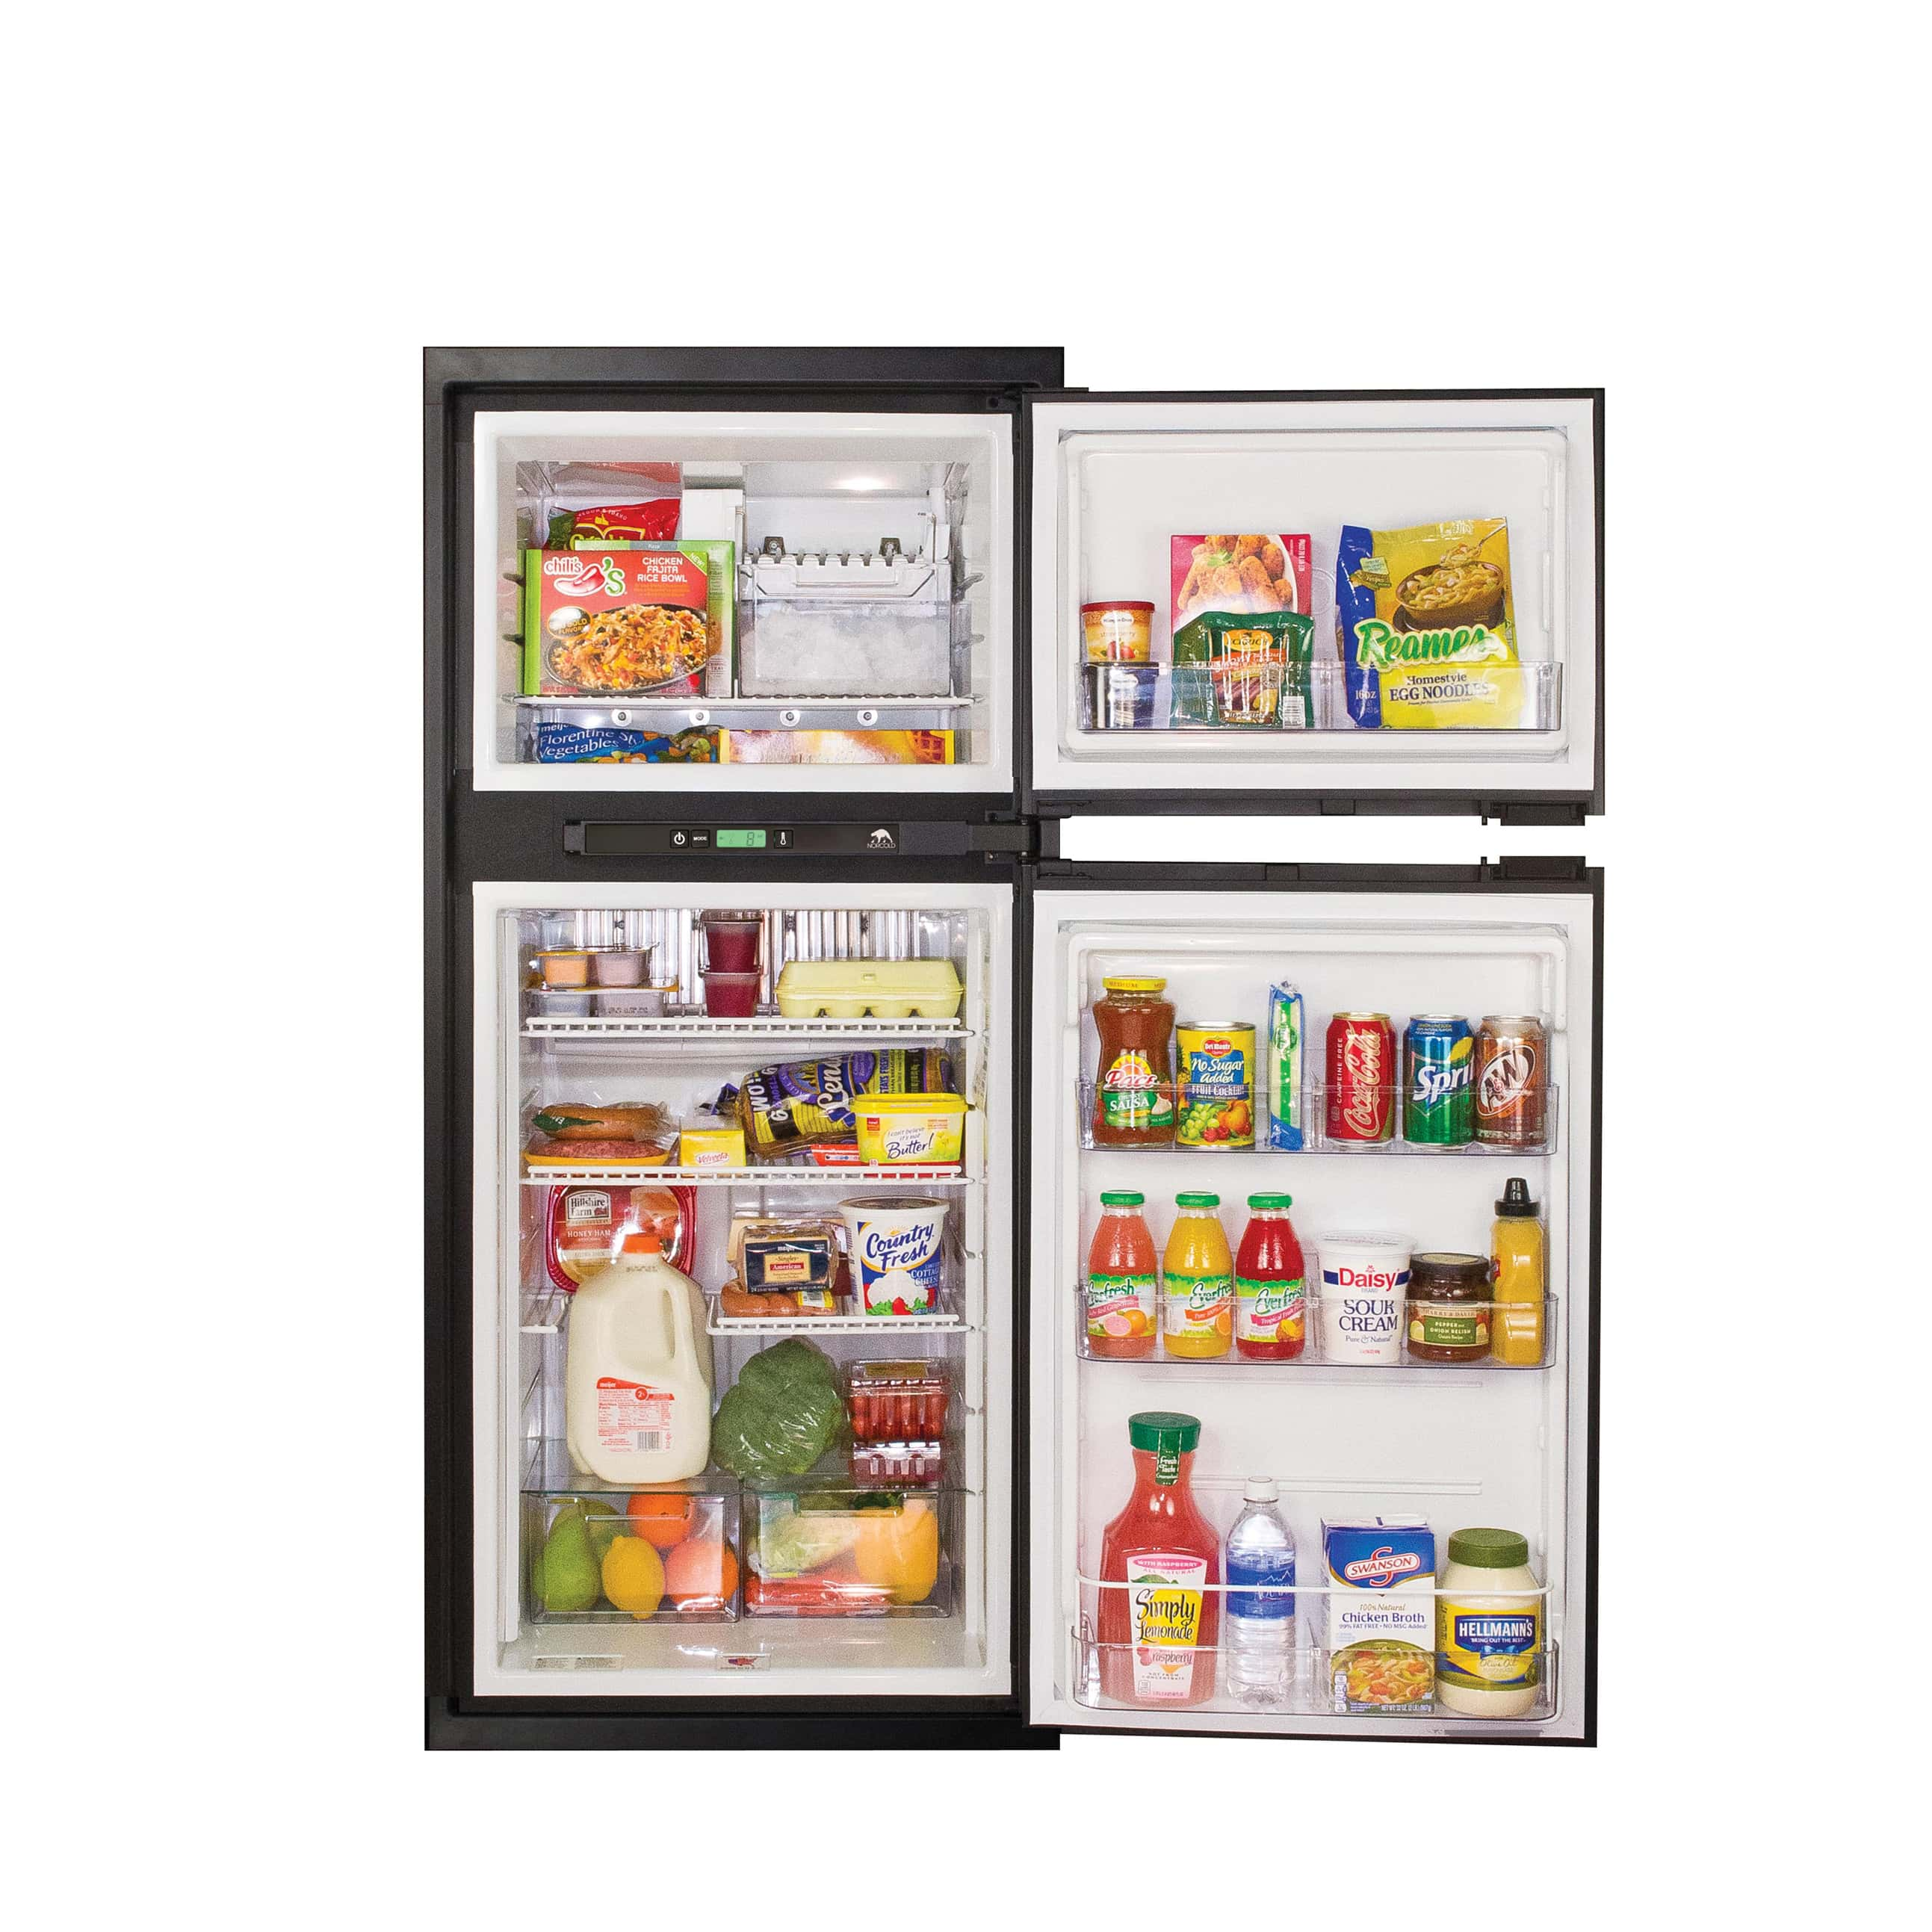 The NX641 RV refrigerator series - Superior quality inside and out